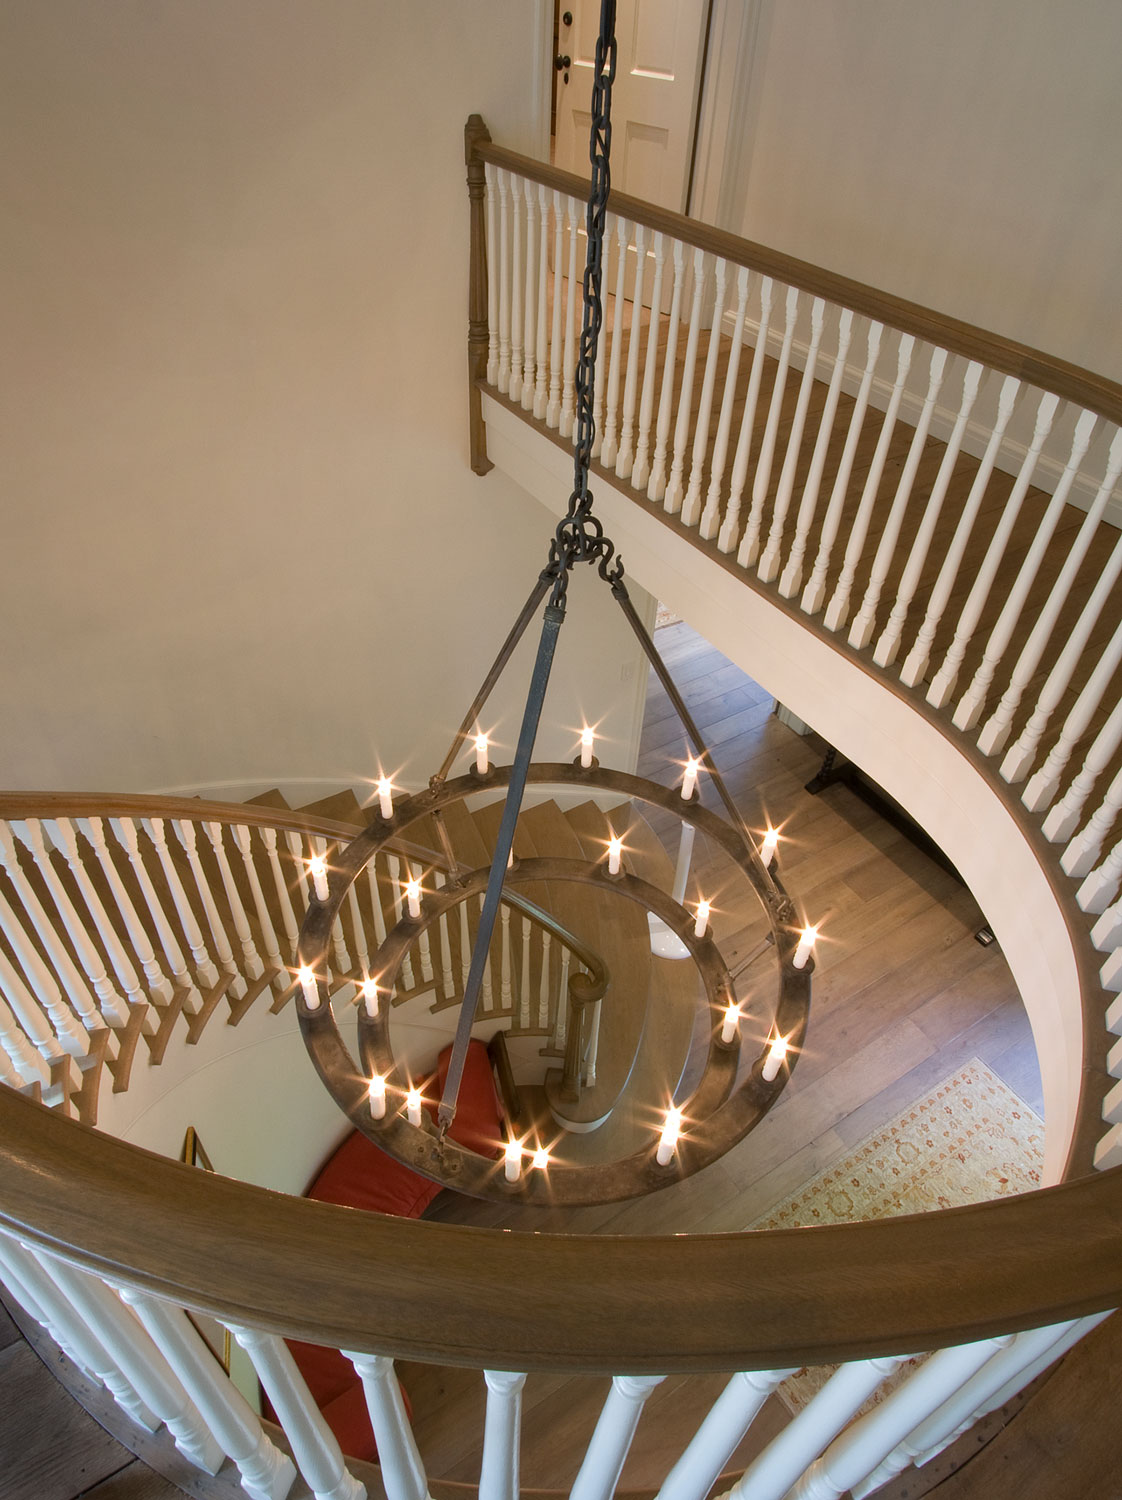 09-A-traditional-staircase-wood-railing-curved-gary-drake-general-contractor.jpg